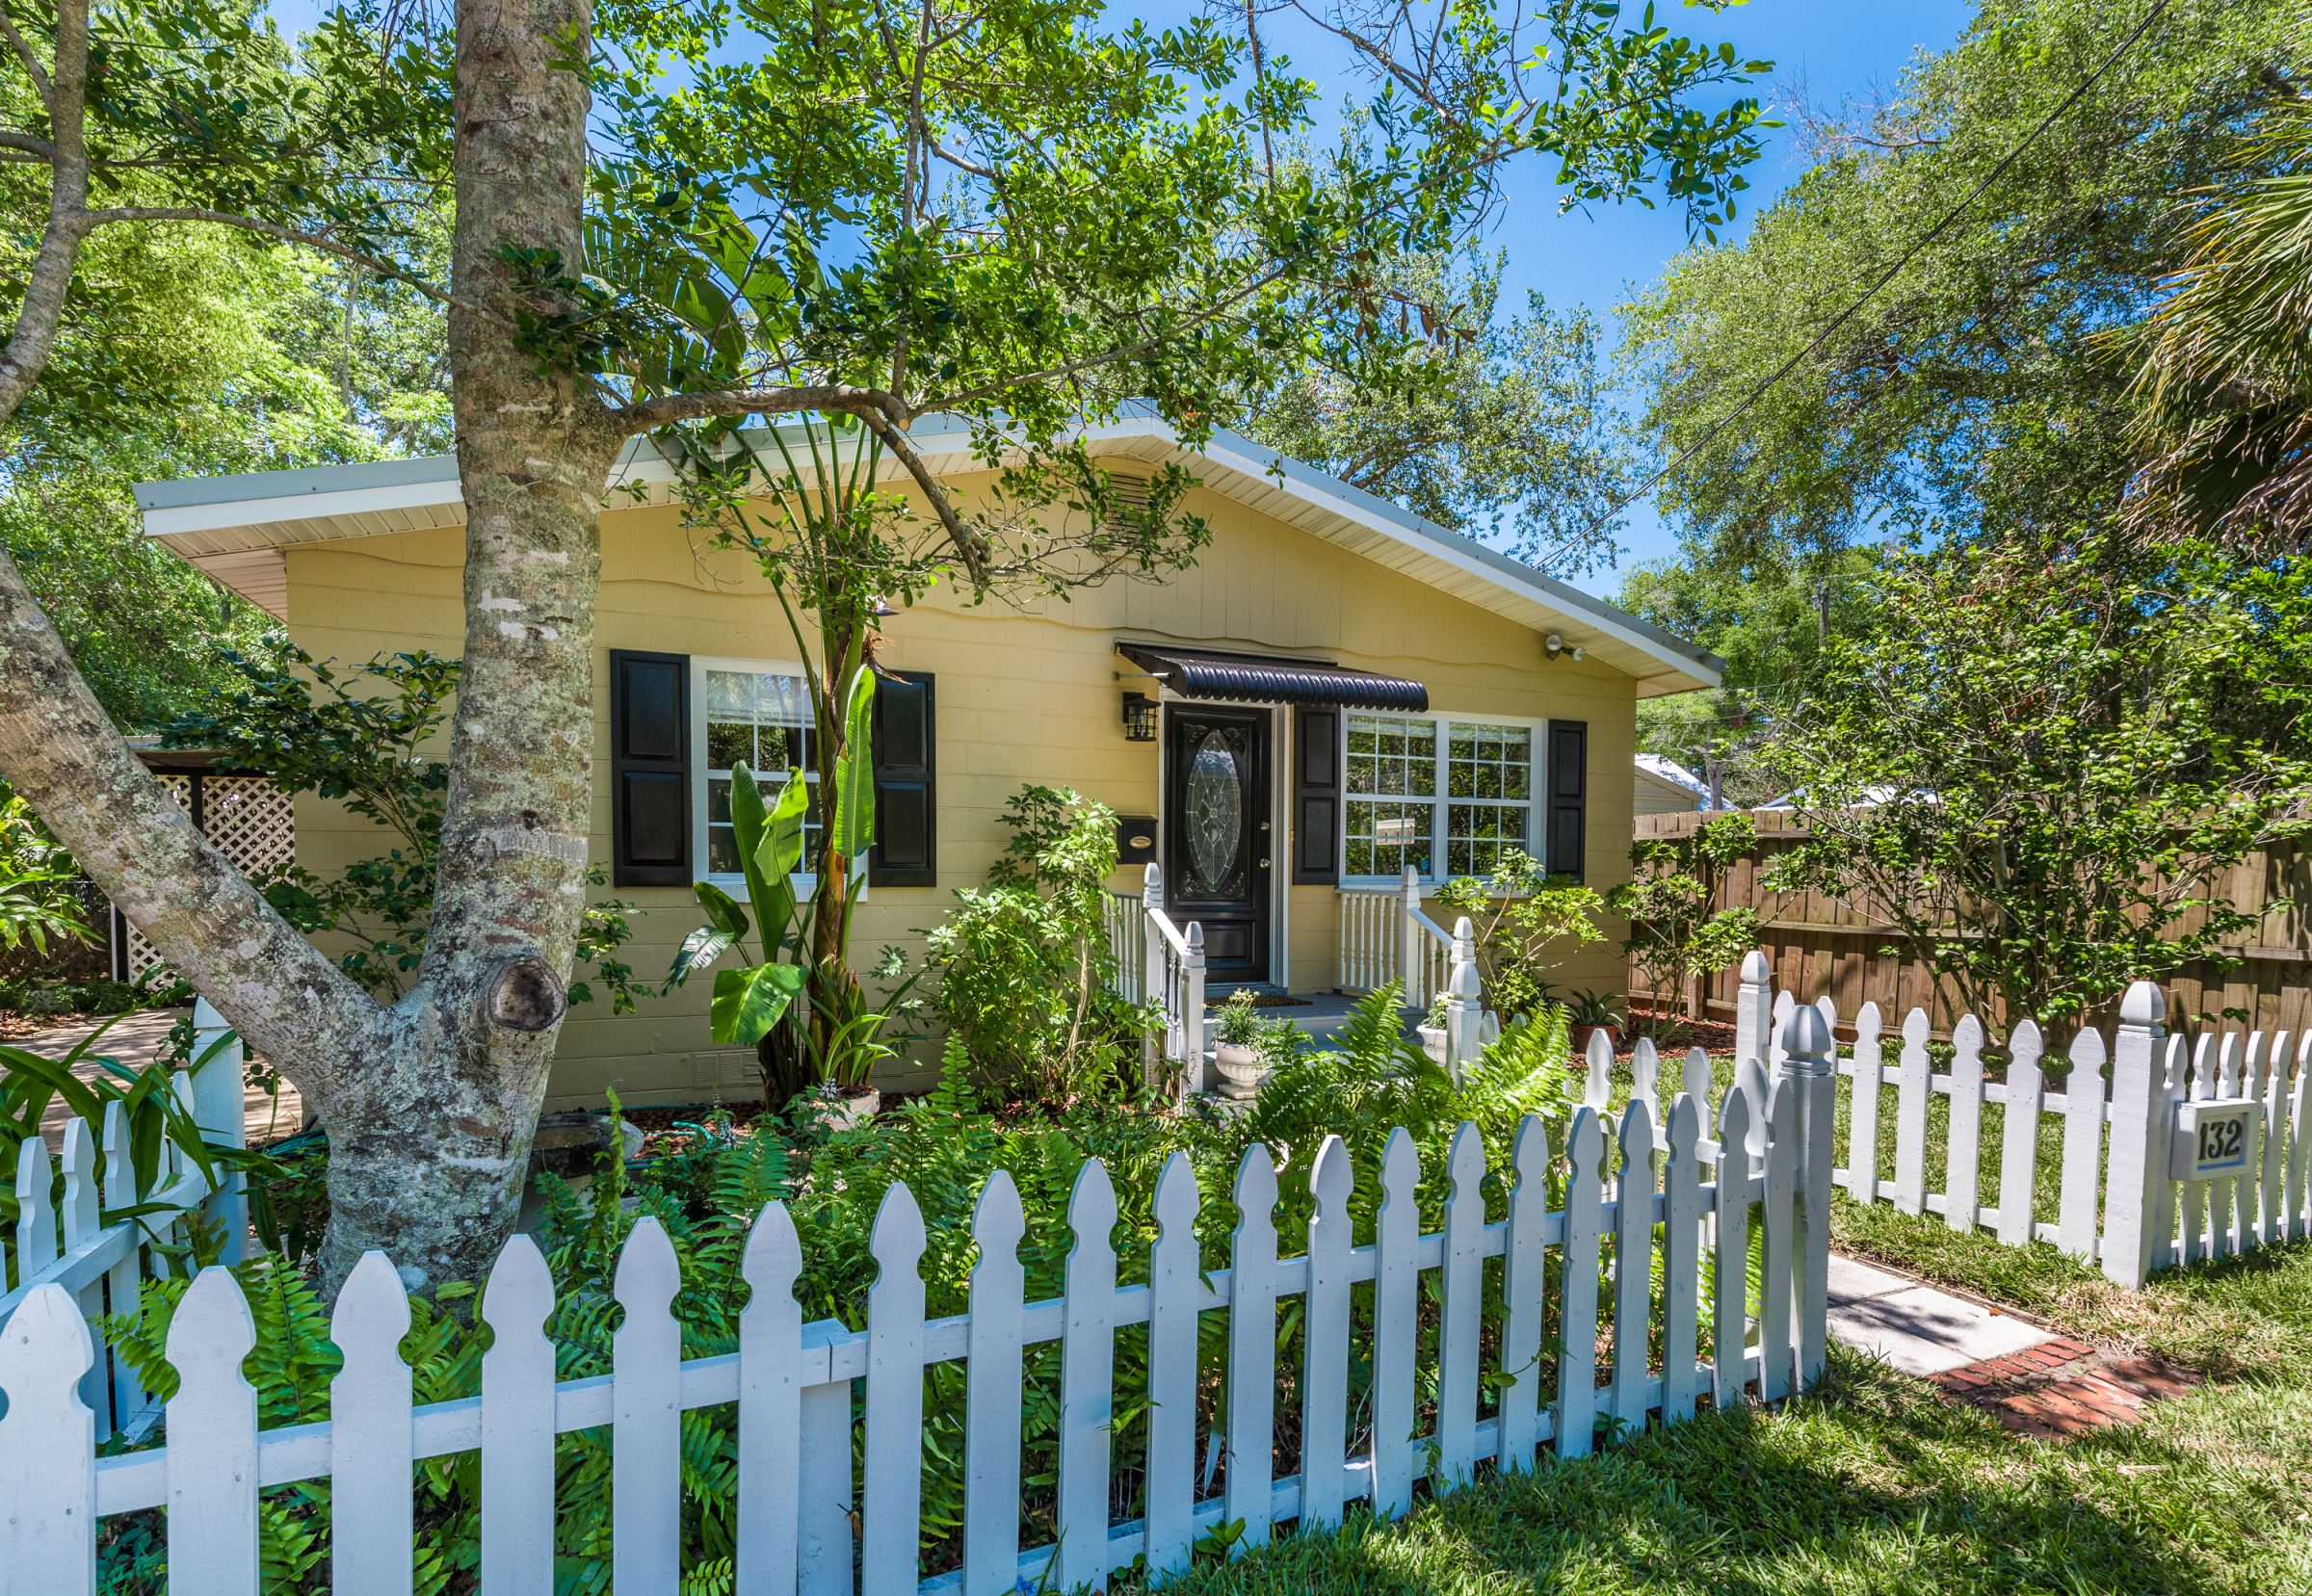 lincolnville mature singles Browse current homes under $500k for sale in lincolnville a dock for your boat, mature perennial gardens, and even a shed for your things single family homes.